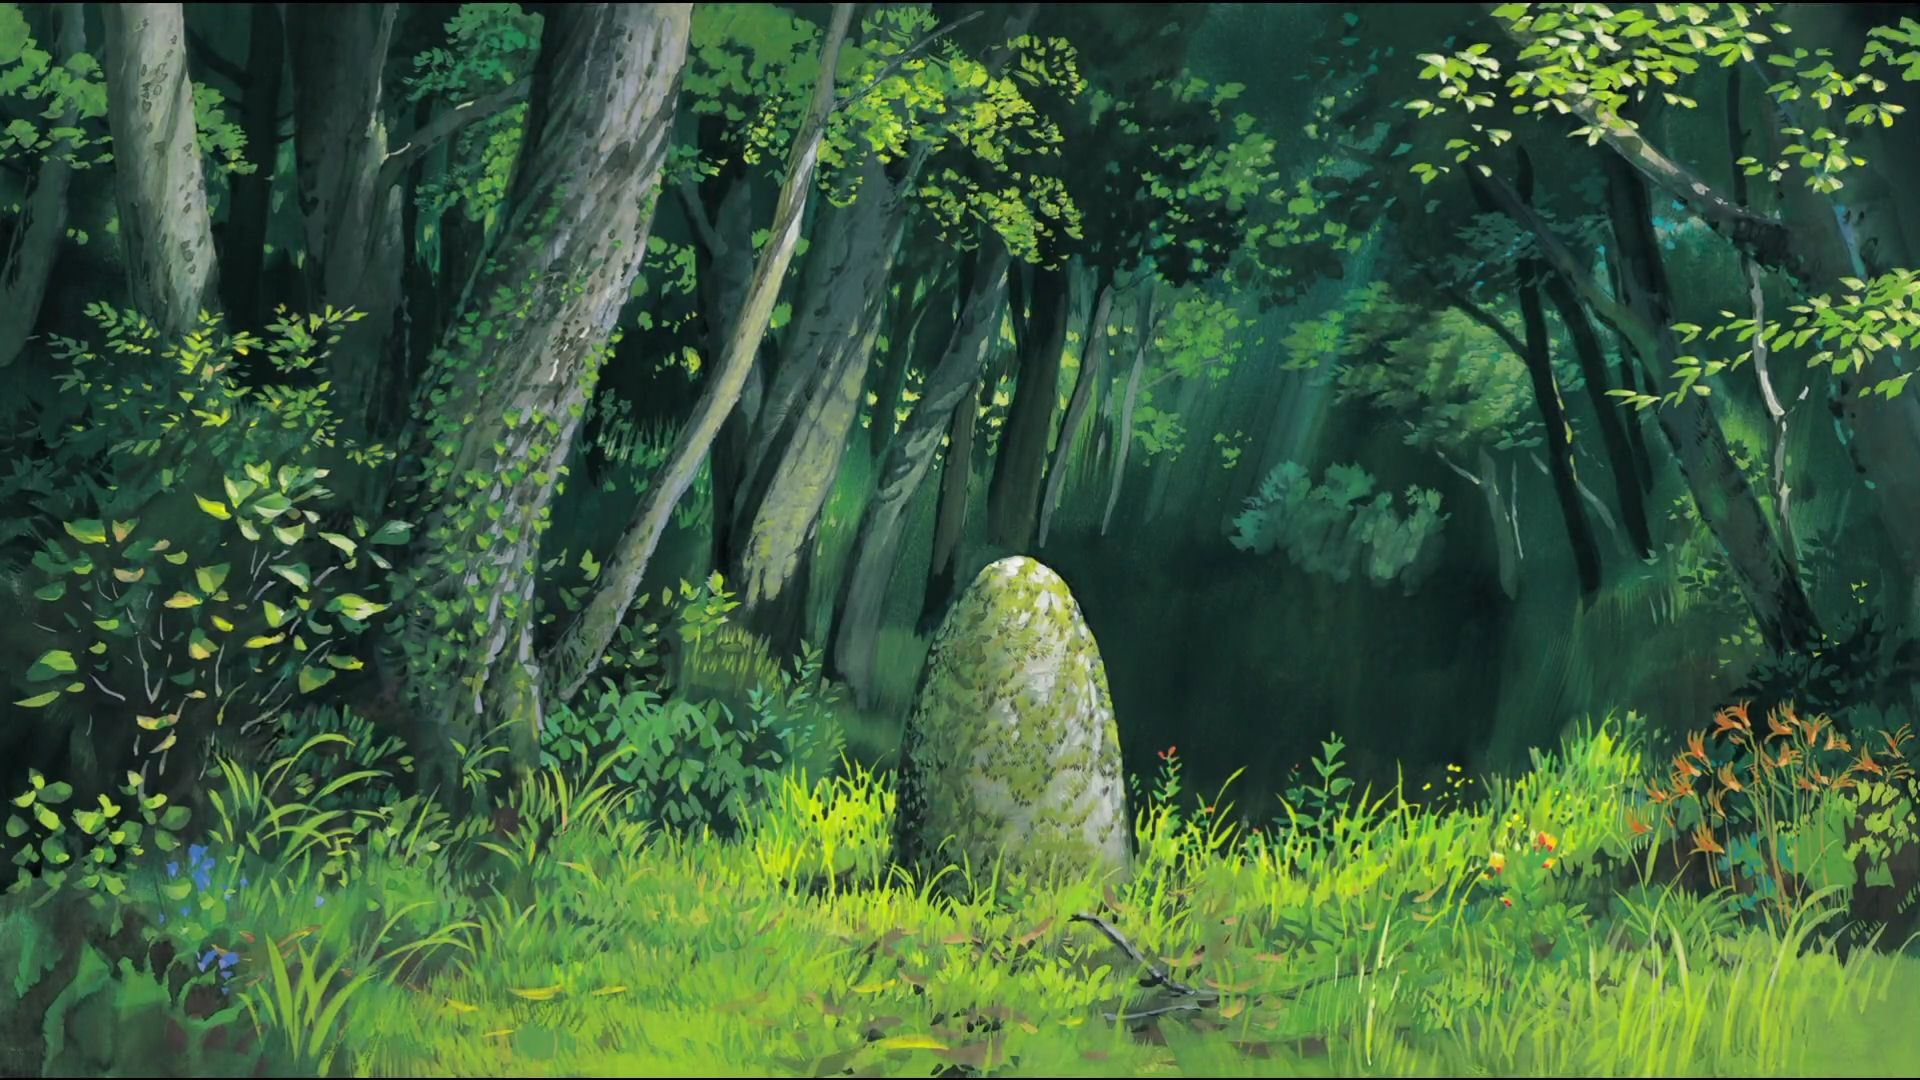 Top Wallpaper Forest Totoro - d41960b1a126c1dcf689e3869ed33cc3  Collection_1001725 .jpg